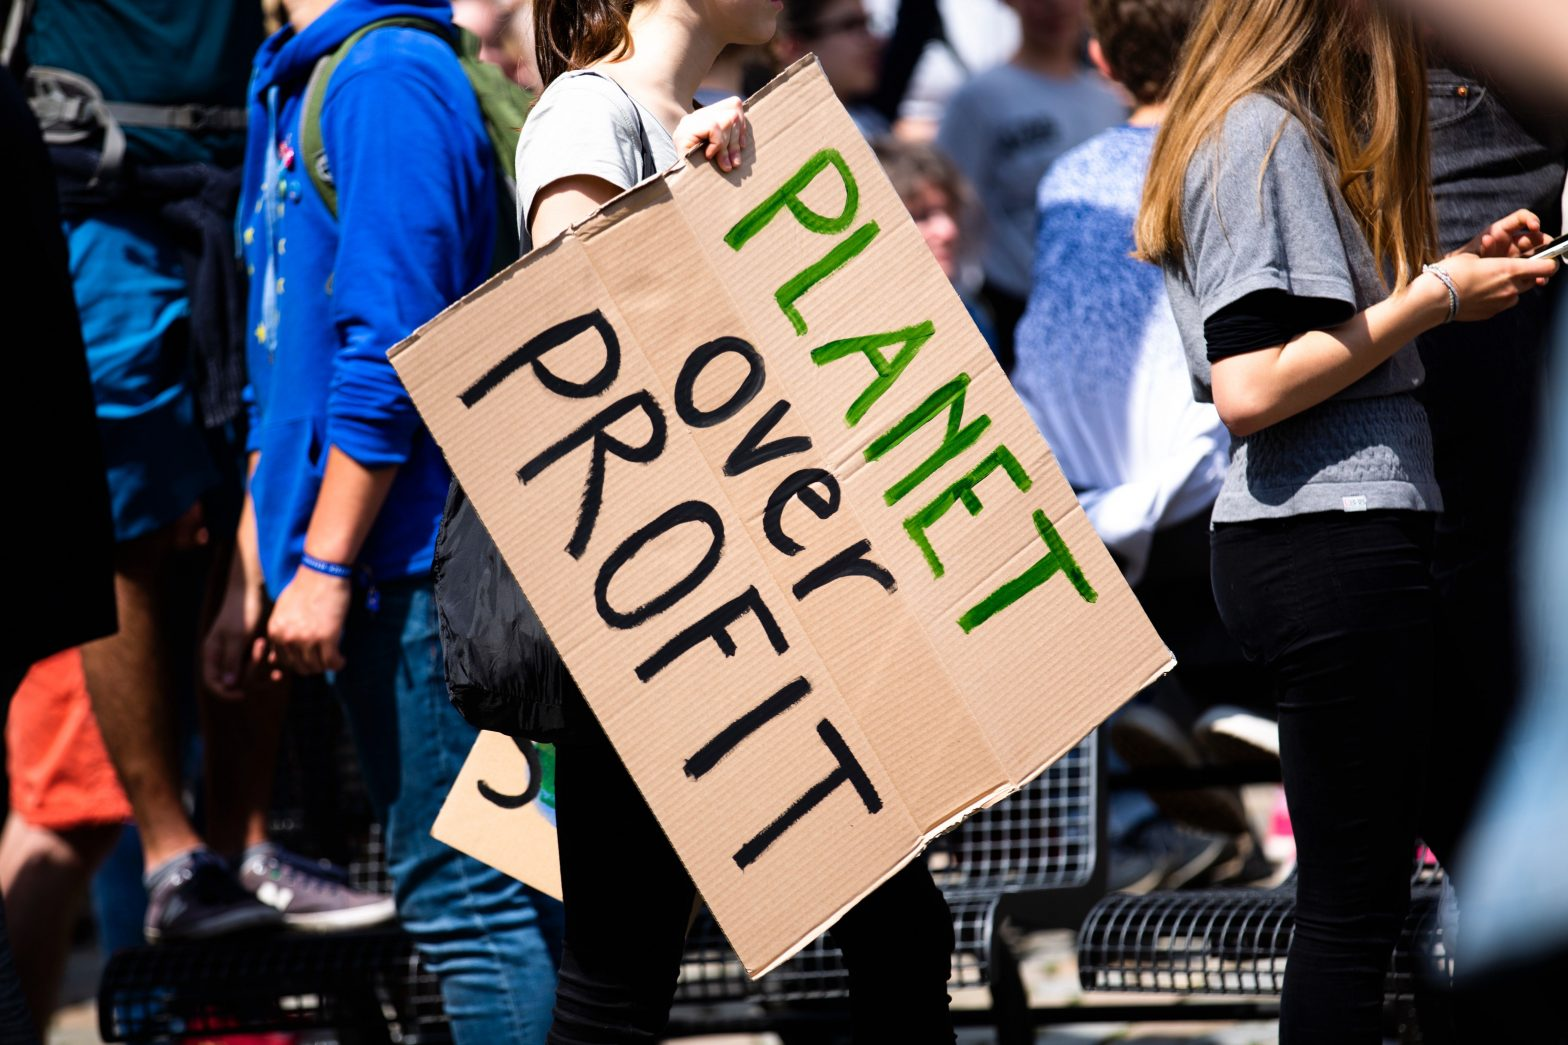 People Protesting with Sign Planet over Profit